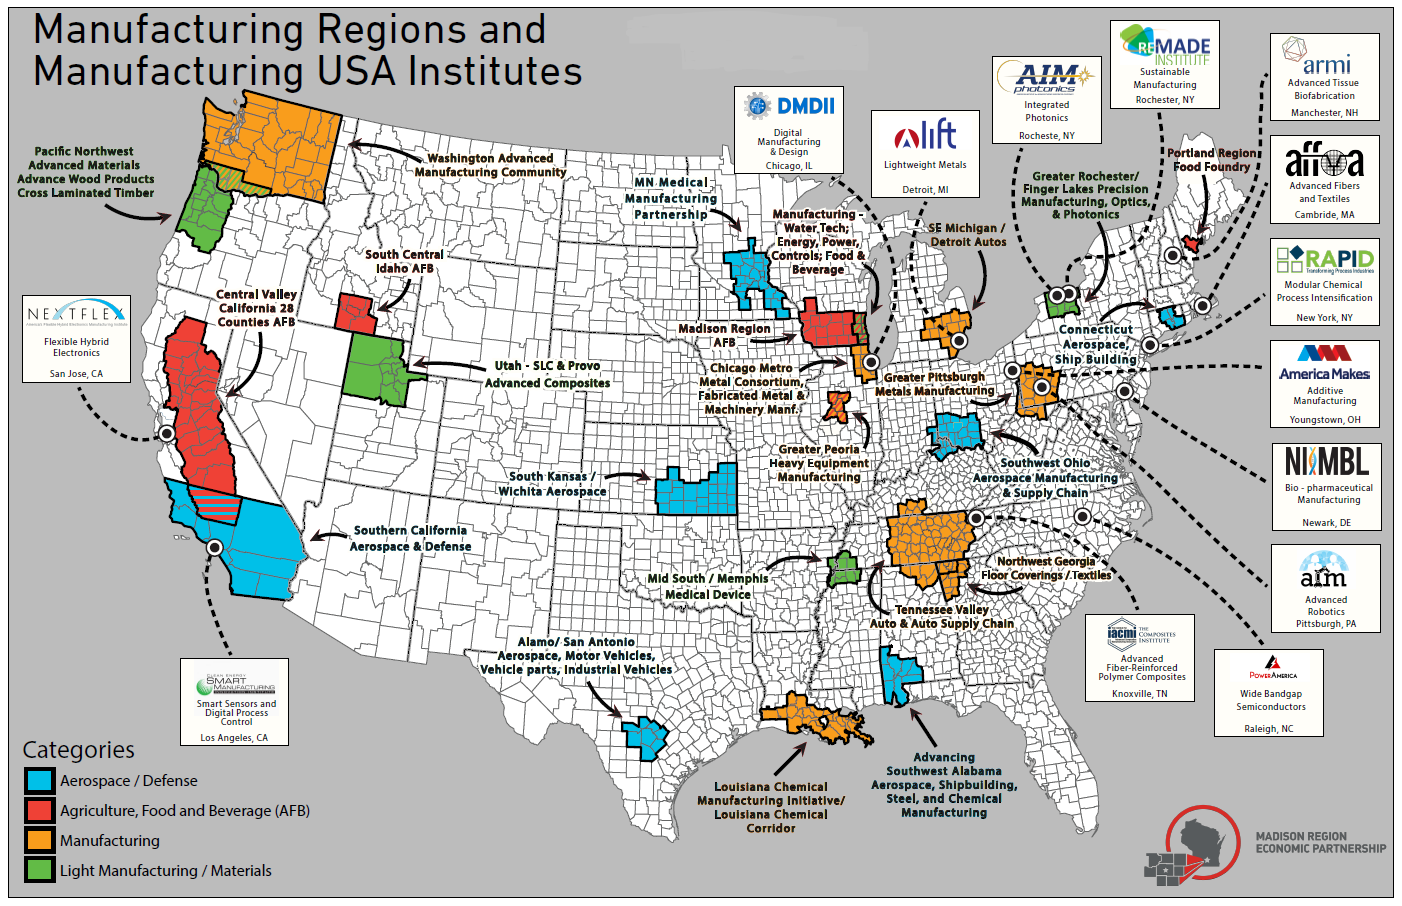 Louisiana Chemical Manufacturing Initiative on south america map, south dakota road map, south coast map, south england, south corpus christi map, south cone map, south province cameroon, northwest map, southwest region map, south korea map, northeast map, somerset map, blank southwest map, isle of wight map, uk map, australia map, world map, southwest canada map, the aegean map, sw asia physical and political map,